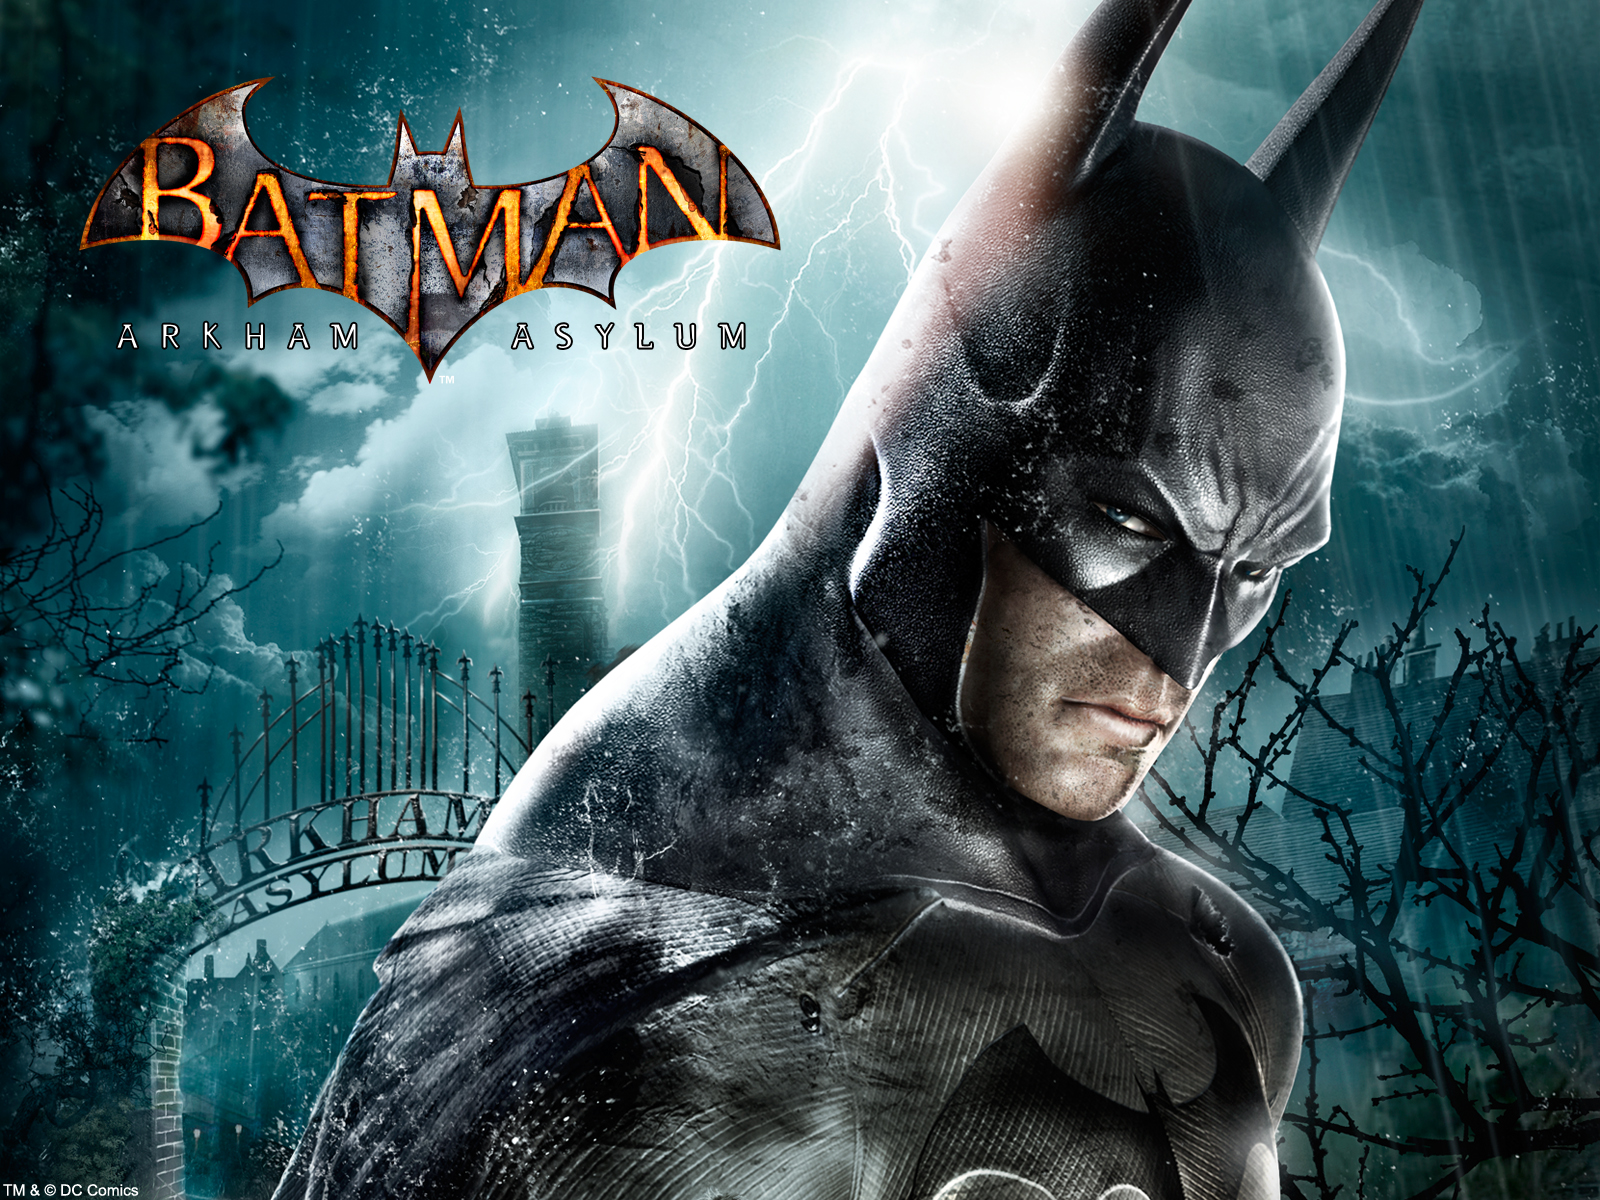 Batman Arkham Asylum Wallpaper: Trololo Blogg: Ps3 Games Hd Wallpapers